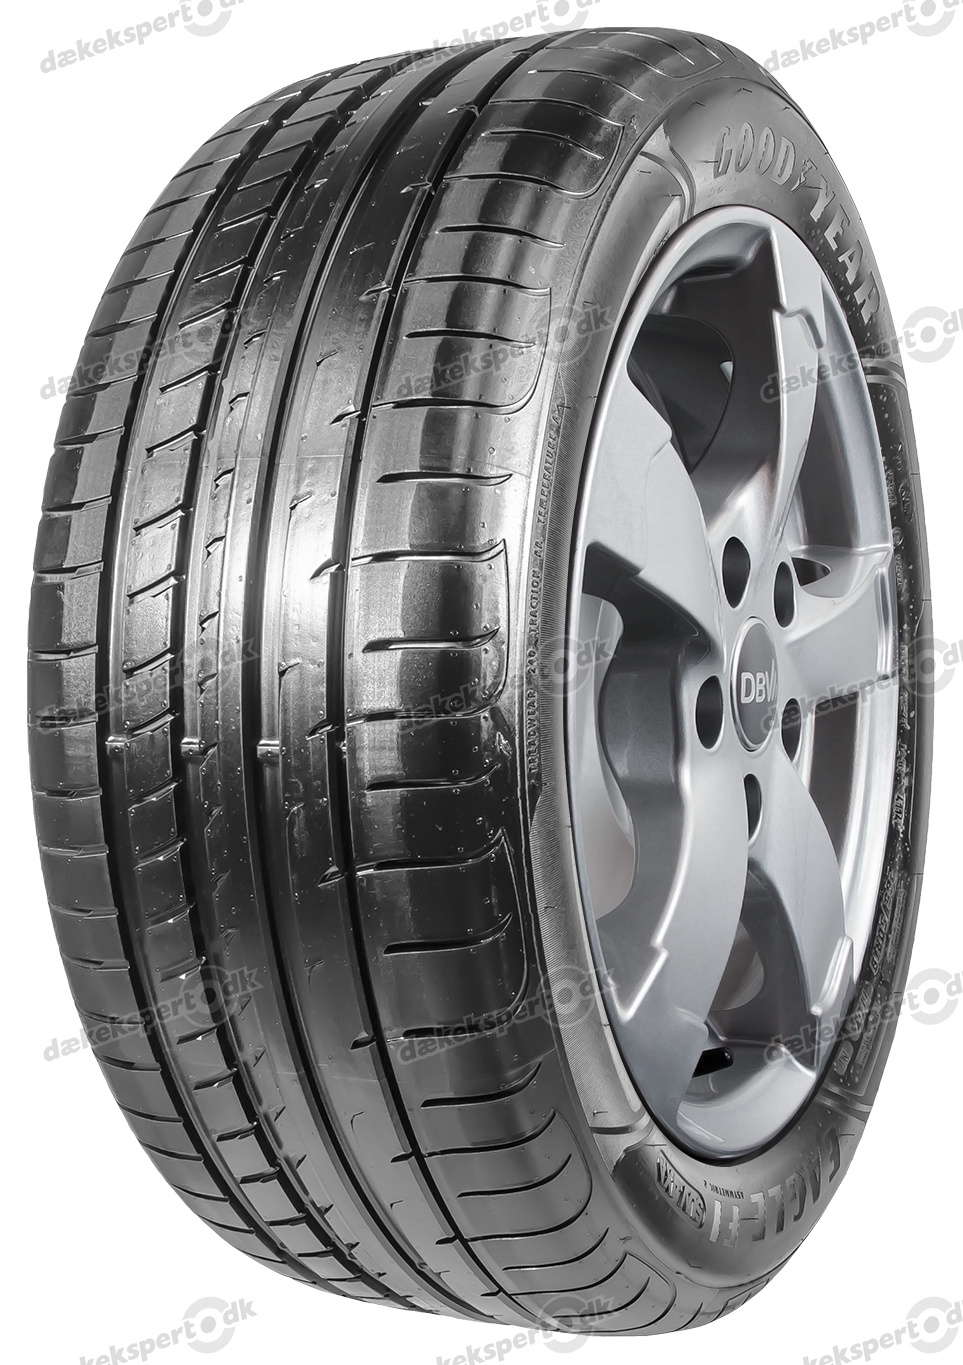 265/40 R20 104Y Eagle F1 Asymmetric XL AO FP  Eagle F1 Asymmetric XL AO FP